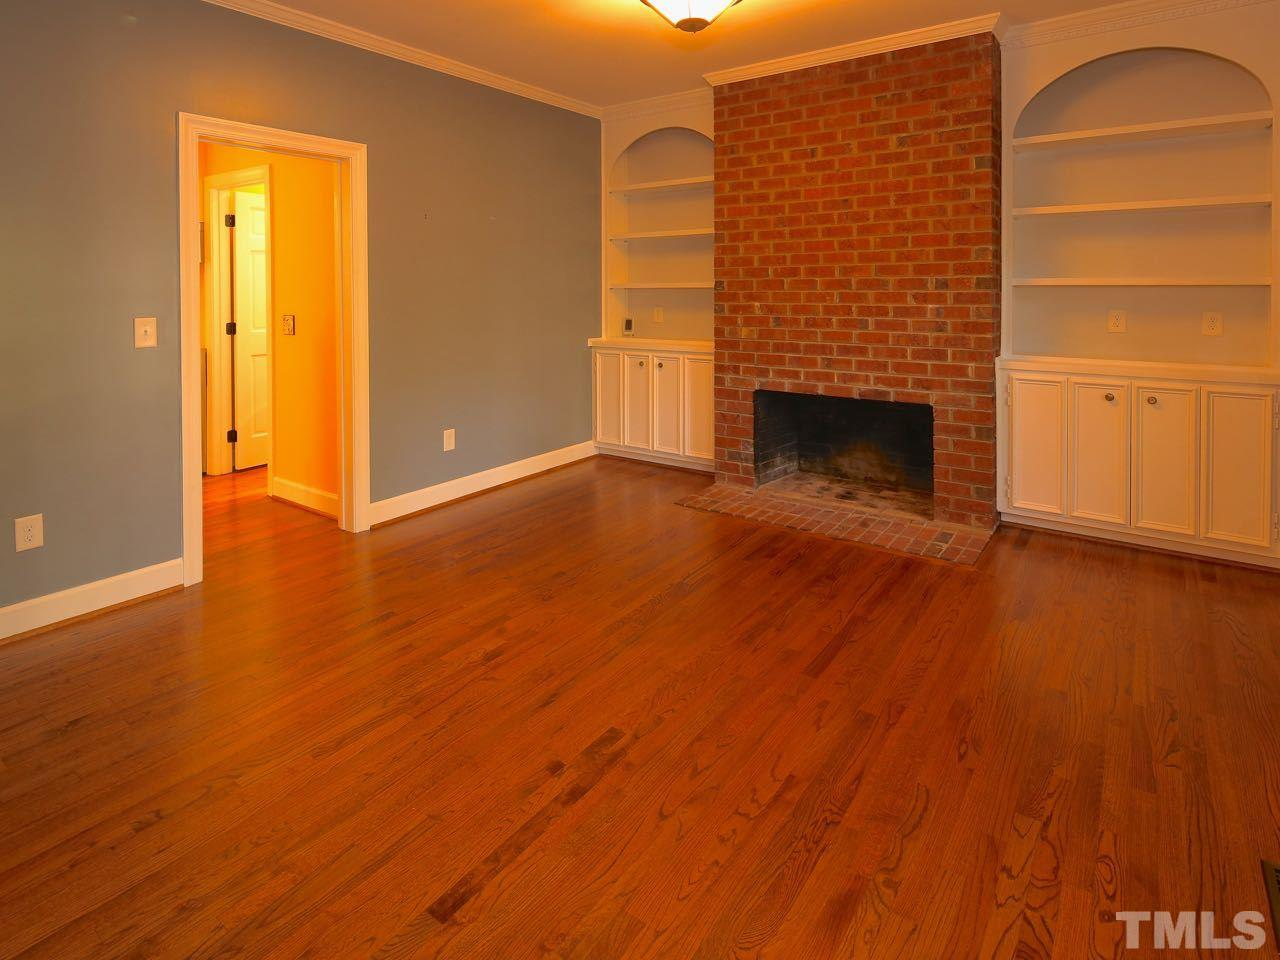 The Living Room is exceptionally large and has a beautiful bay window, which lets in lots of natural light.